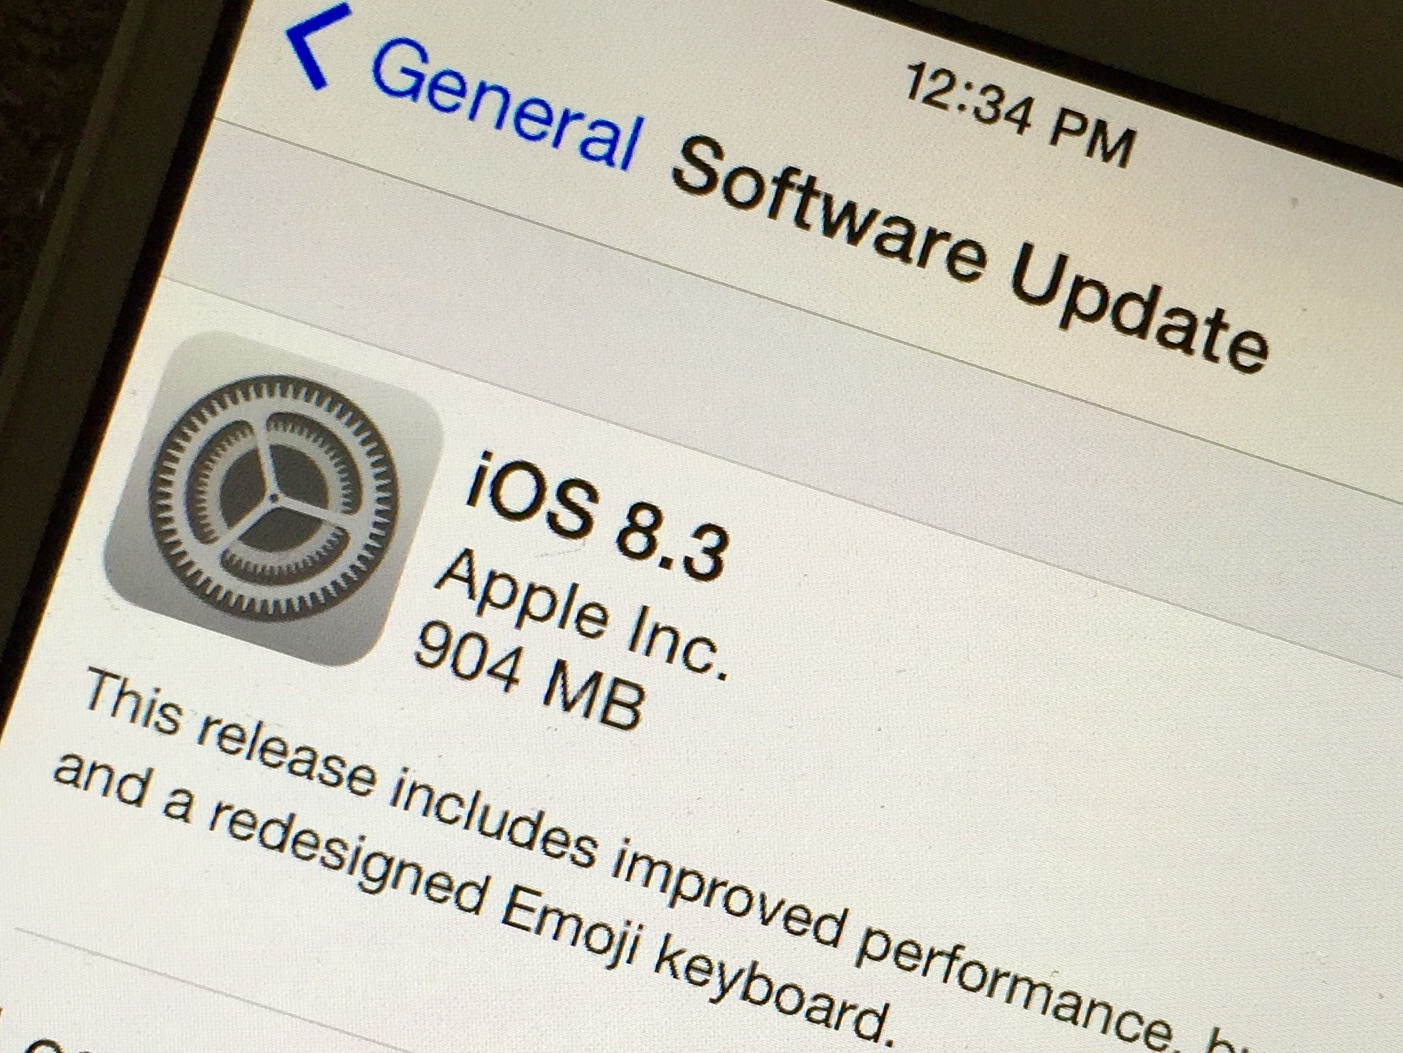 Most users can install the iOS 8.3 on the iPad 2.